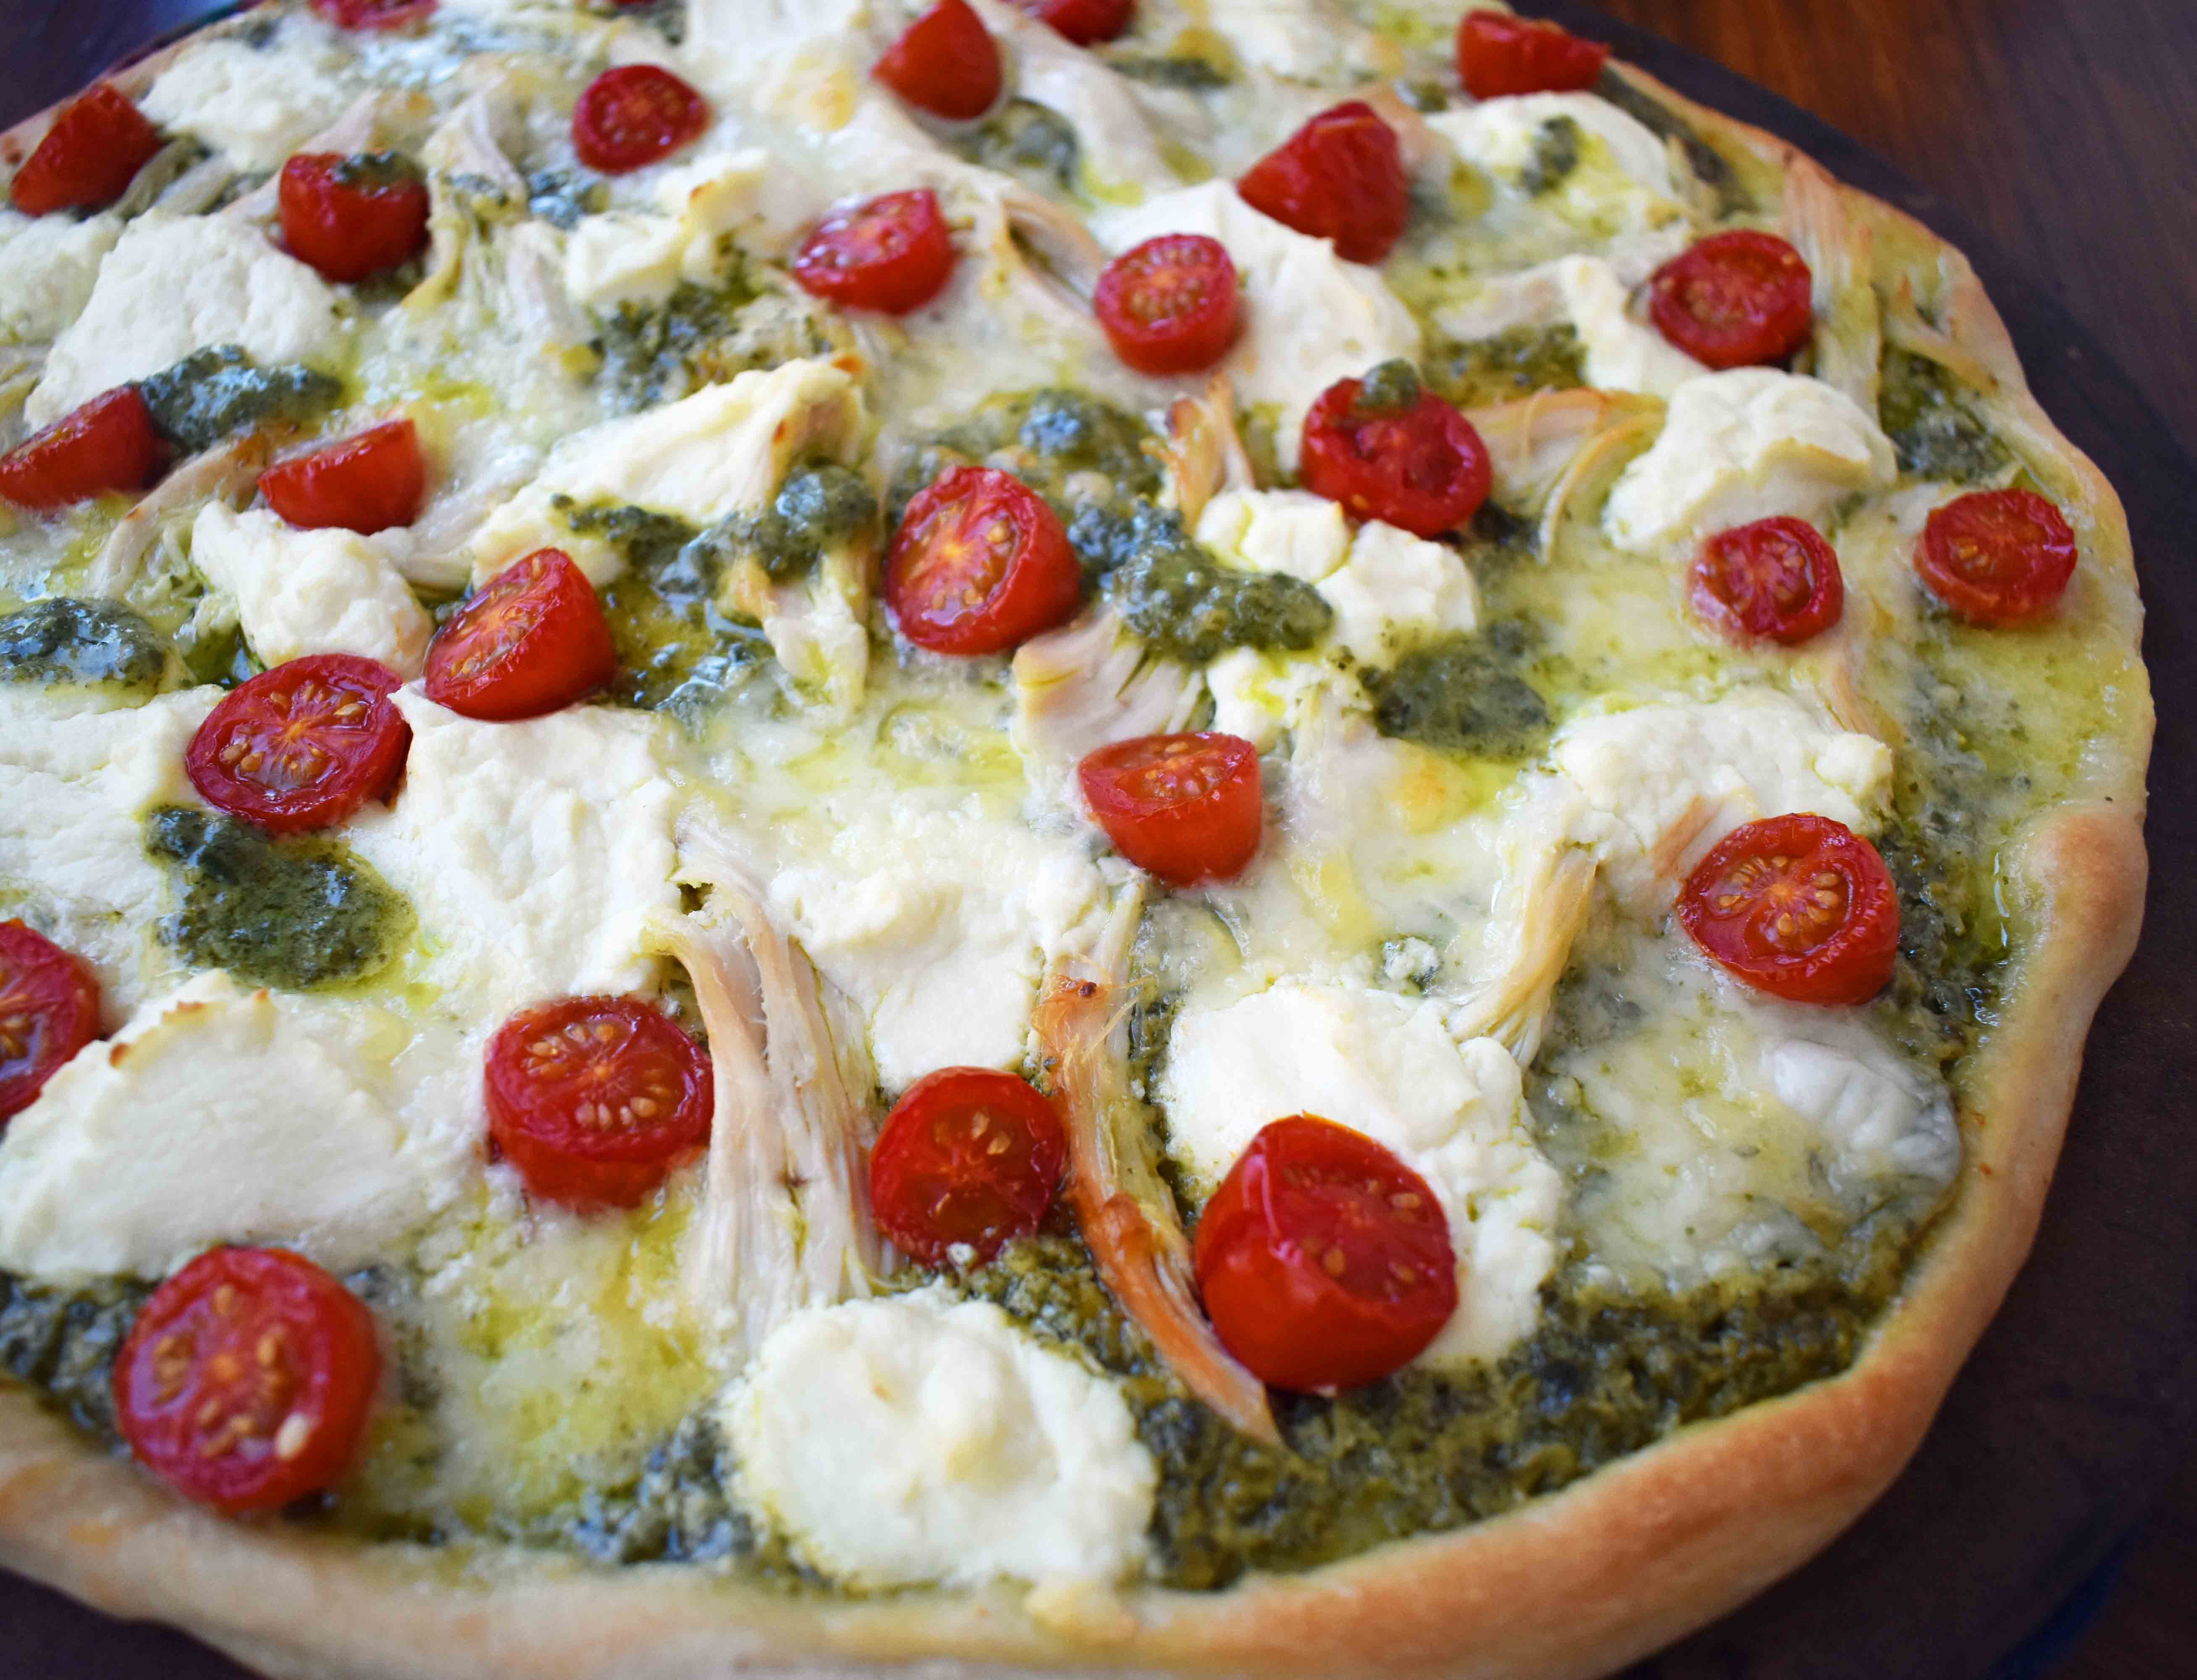 Chicken Pesto Pizza made with only 5 ingredients -- refrigerated pizza dough, pesto sauce, rotisserie chicken, ricotta cheese, and fresh mozzarella. May add grape tomatoes if so desired. An easy, flavorful homemade white pizza. www.modernhoney.com